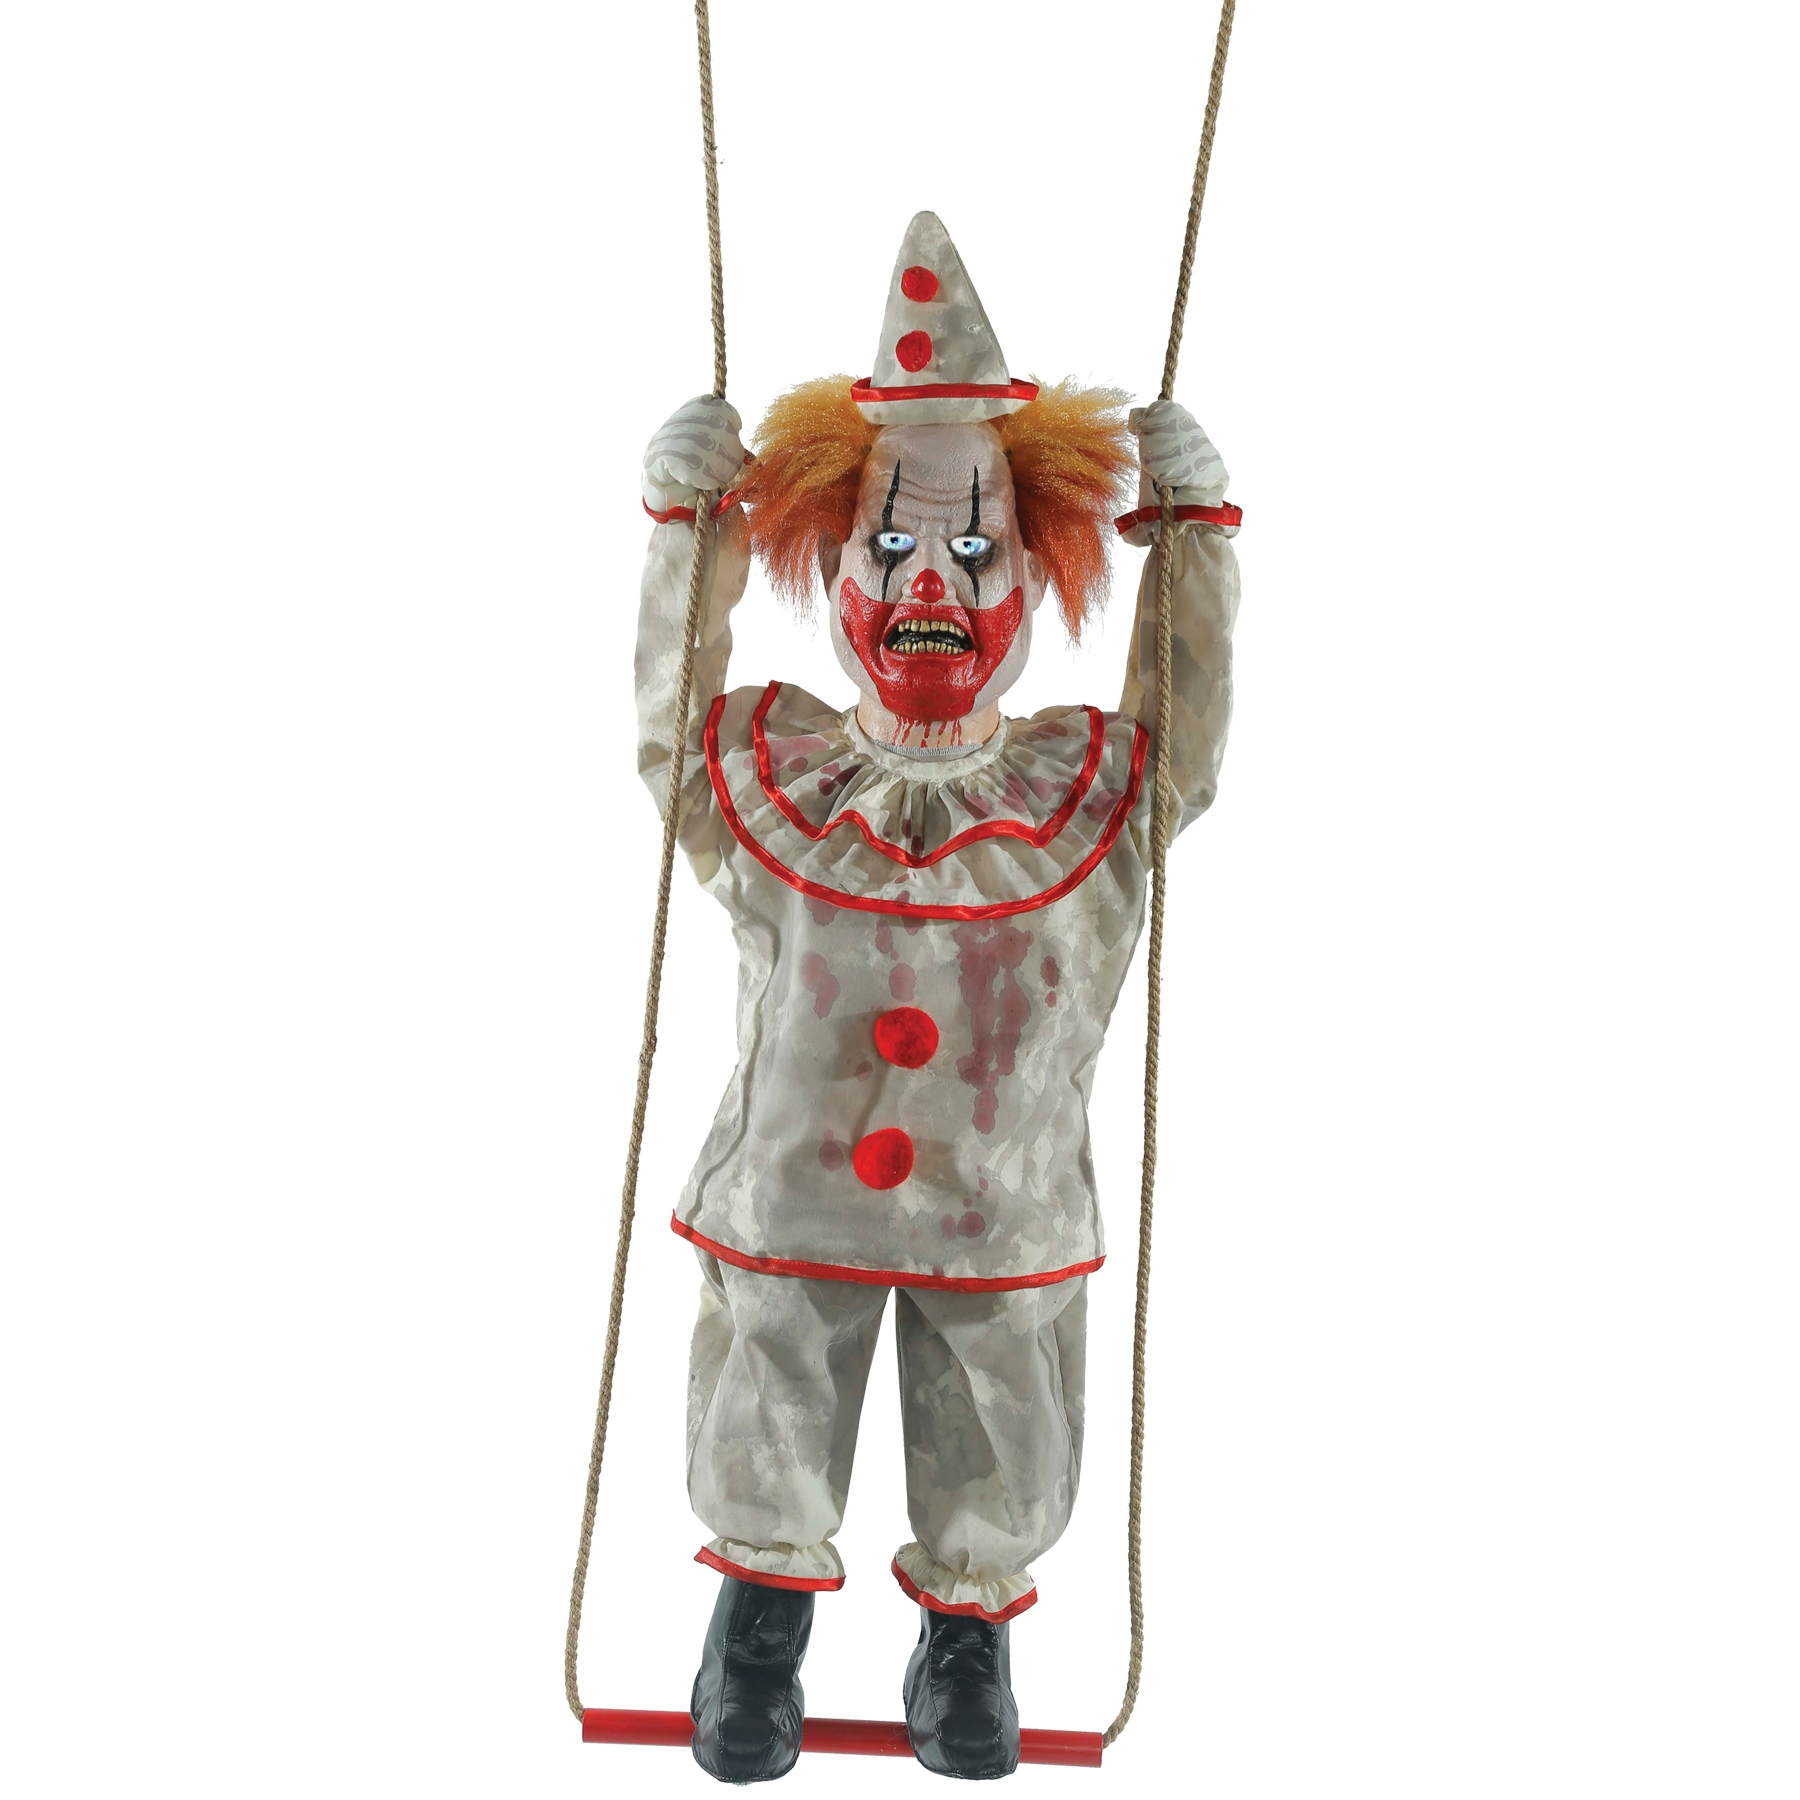 Swinging Happy Clown Animated